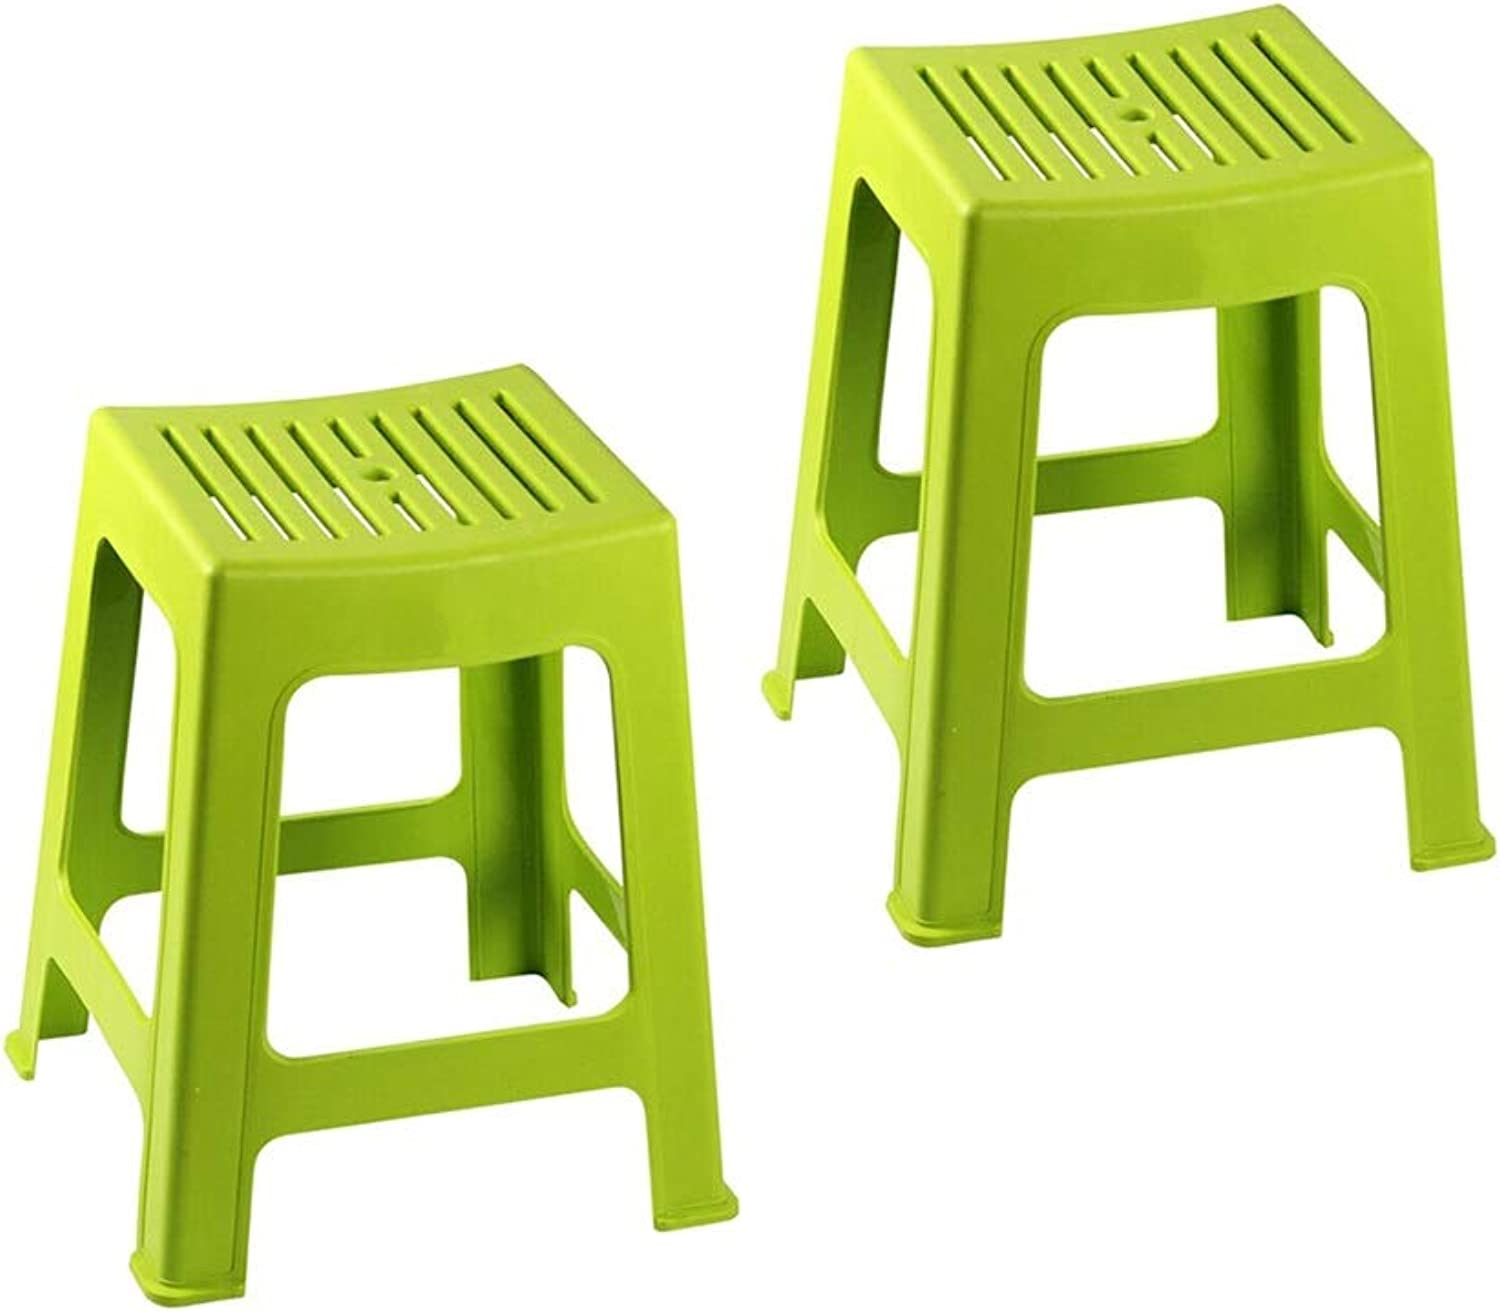 AGLZWY 2-Piece Set Low Stool Bathroom Multipurpose Plastic High Waterproof Strong Bearing Capacity Anti-Slip Portable Fashion Living Room Change shoes Bench (color   Green, Size   28X25X44CM)